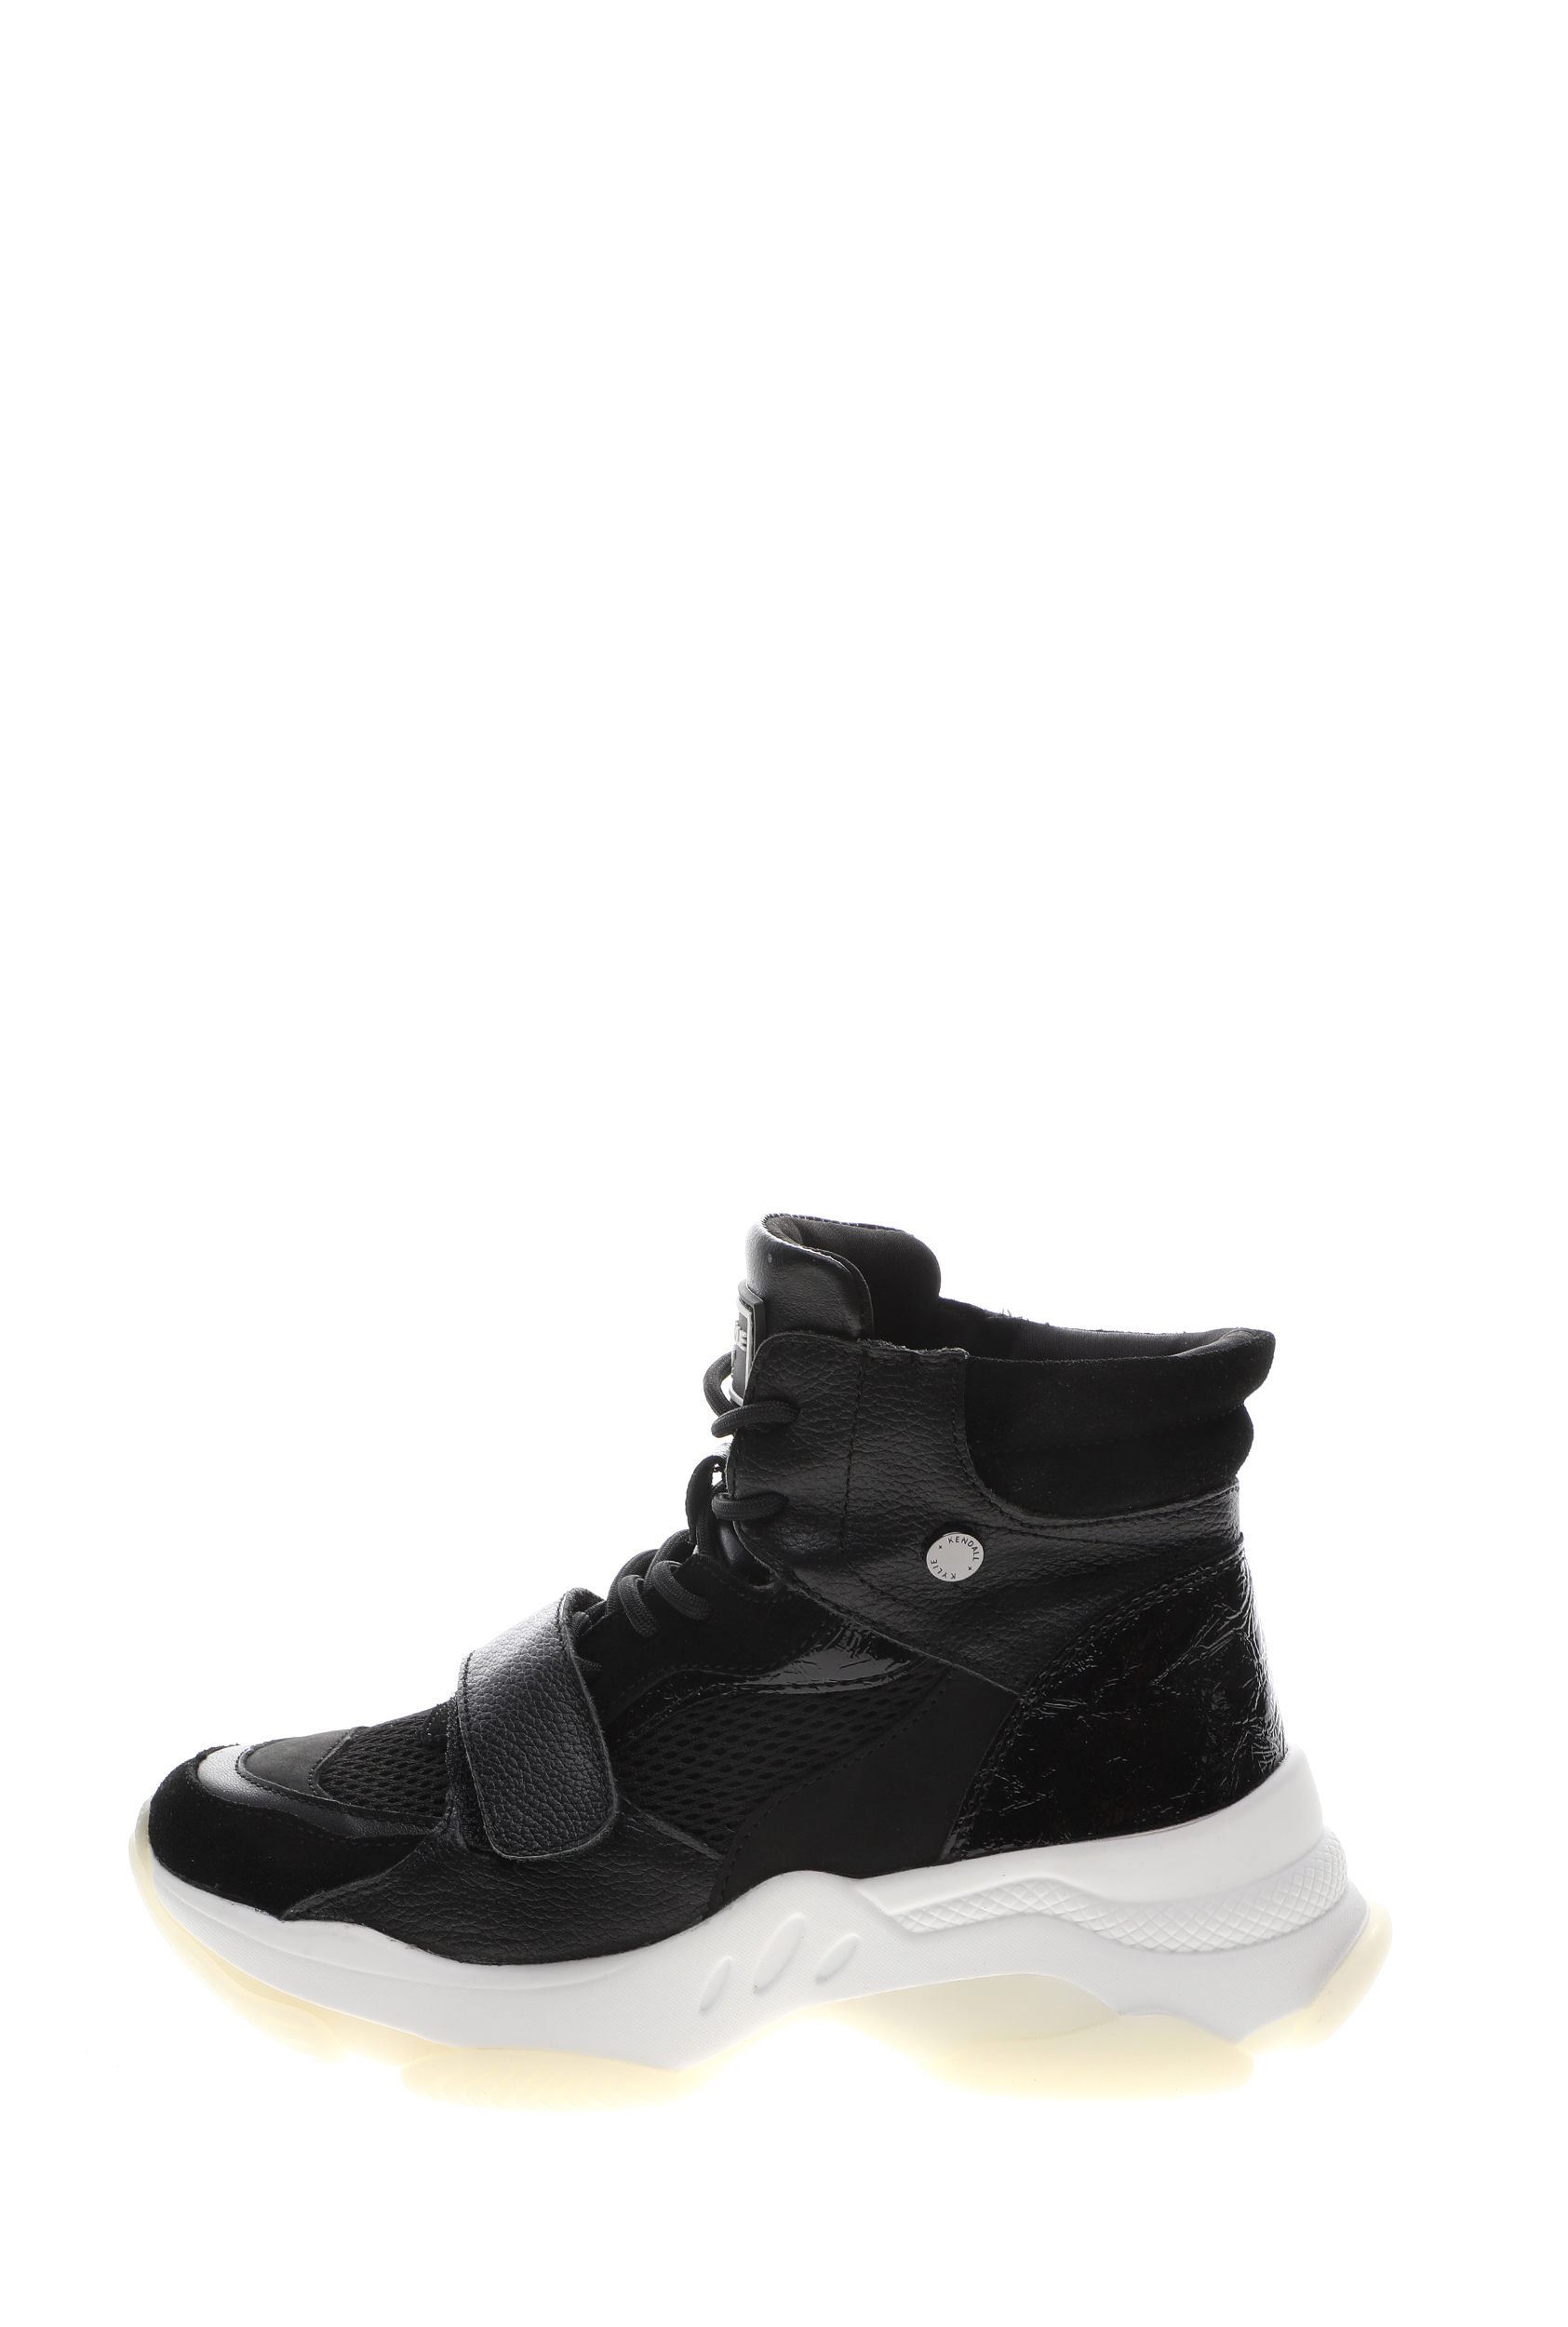 KENDALL+KYLIE – Γυναικεία μποτάκια sneakers KENDALL+KYLIE ZERA μαύρα